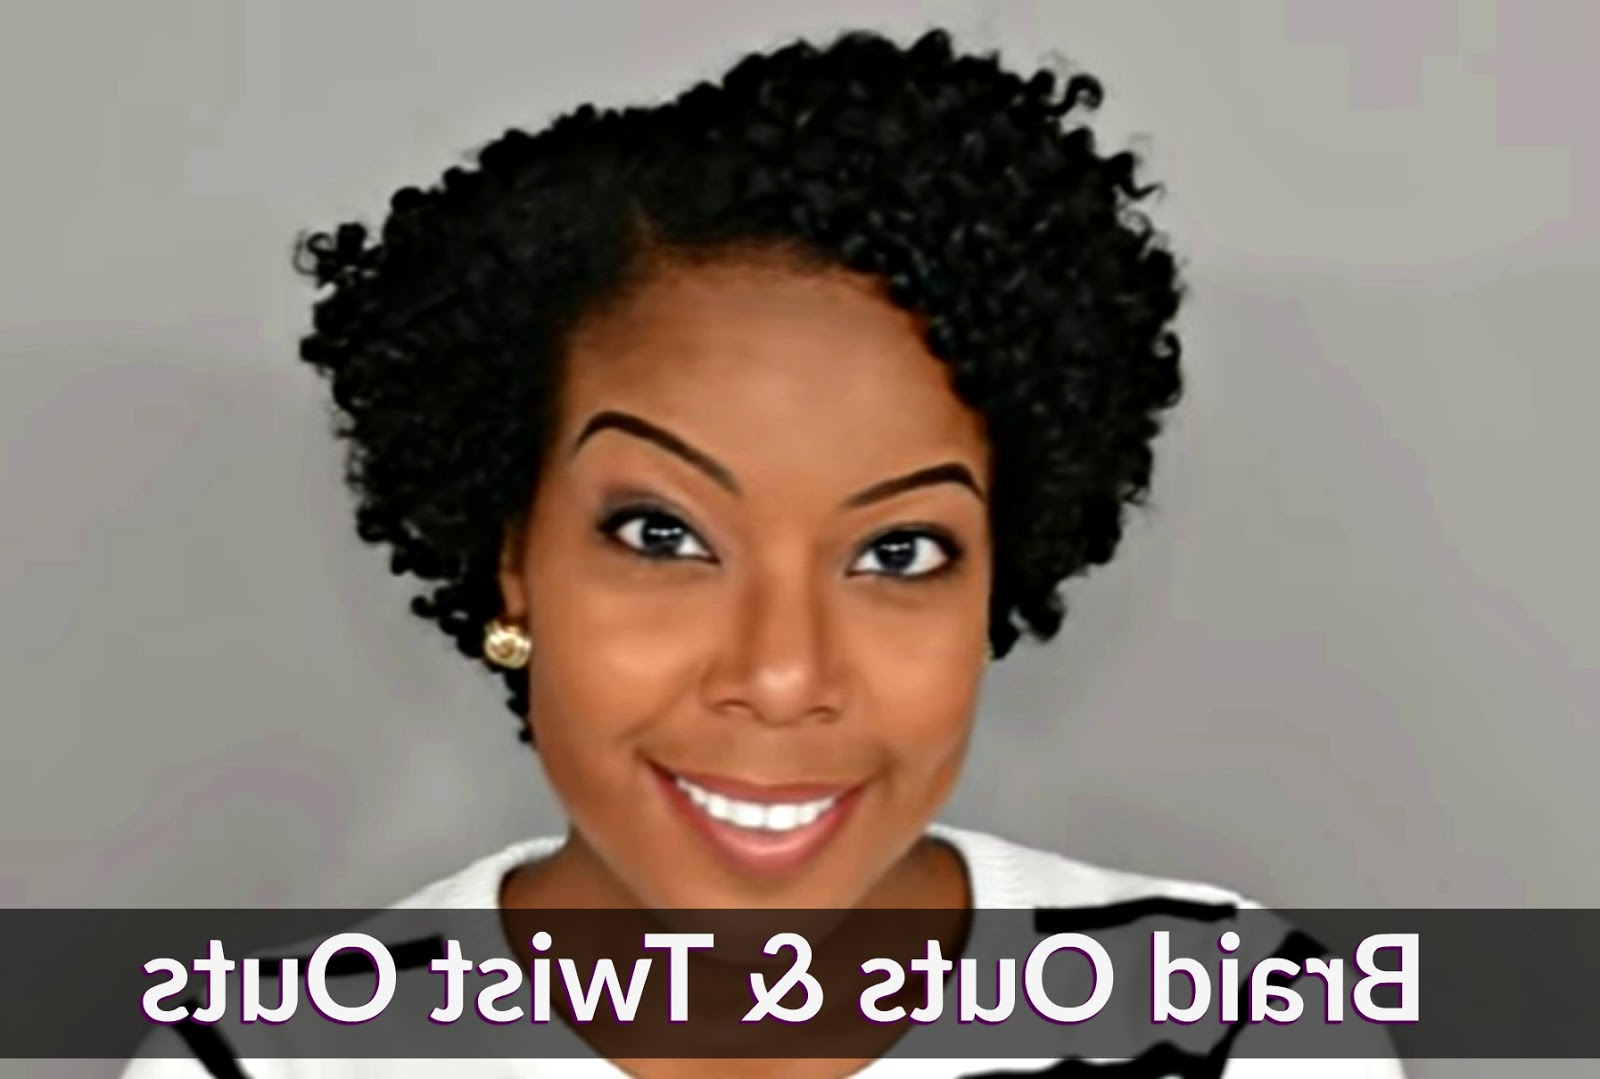 Transitioning Hairstyles For Short Hair For Natural Hair Newbies! Within Short Haircuts For Transitioning Hair (View 22 of 25)